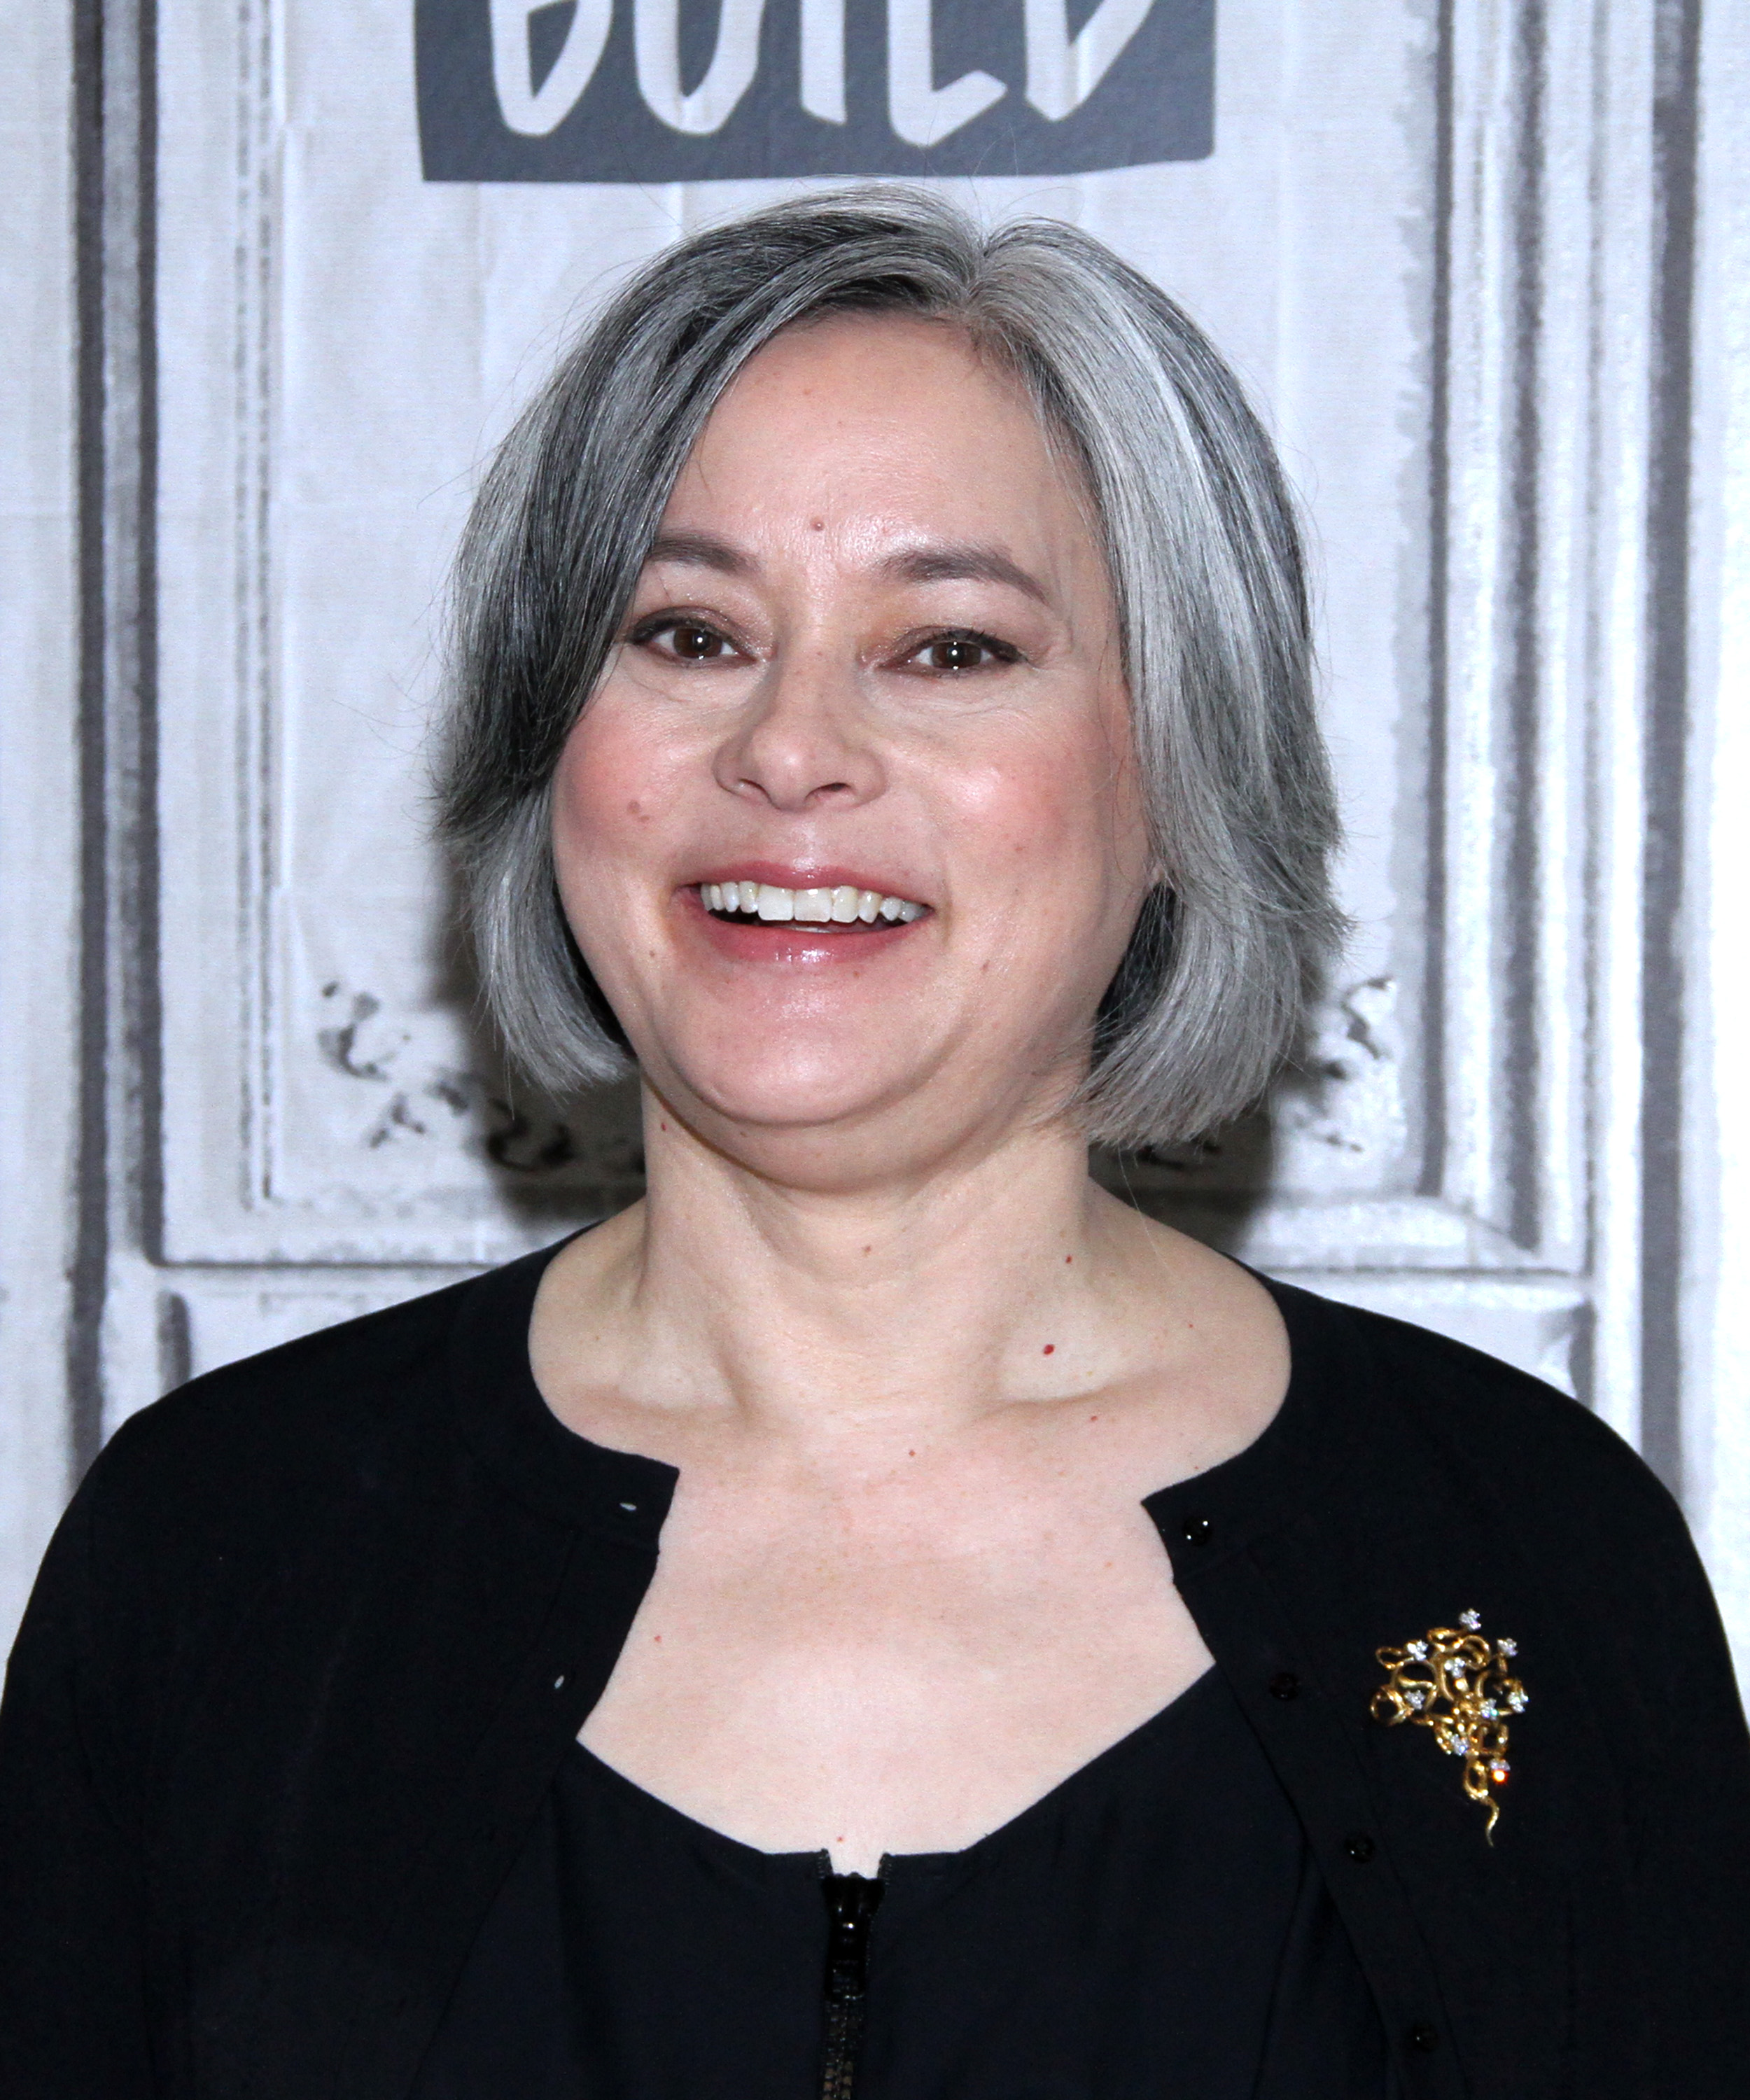 Forum on this topic: Larissa Wilson (born 1989), meg-tilly/